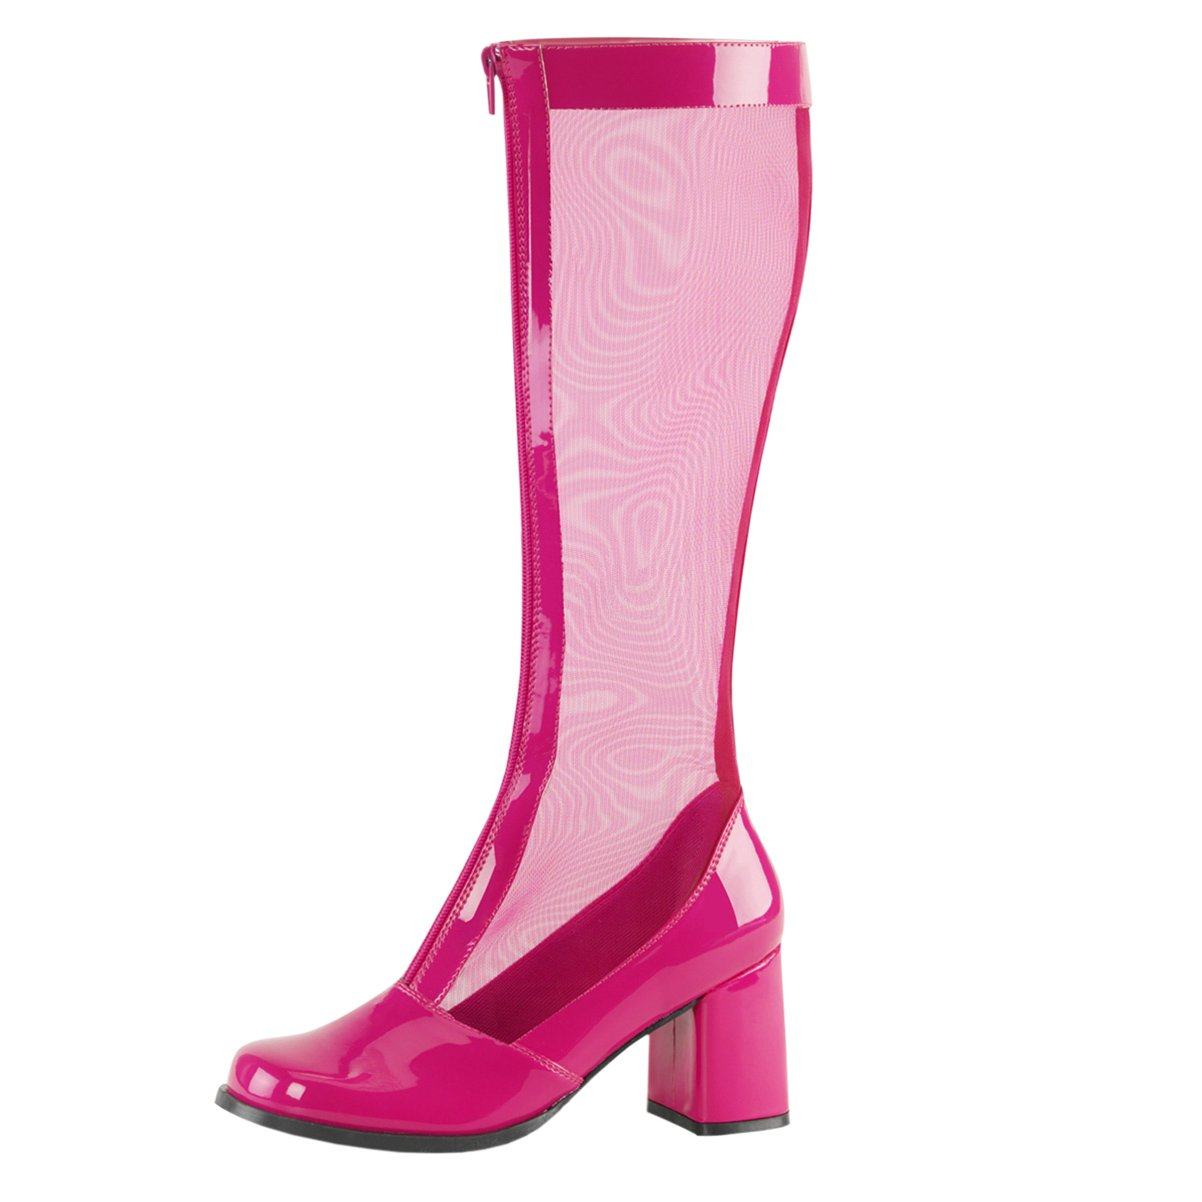 191f7ed84f0 Amazon.com | Summitfashions Womens Hot Pink Boots Mesh Knee High Go ...